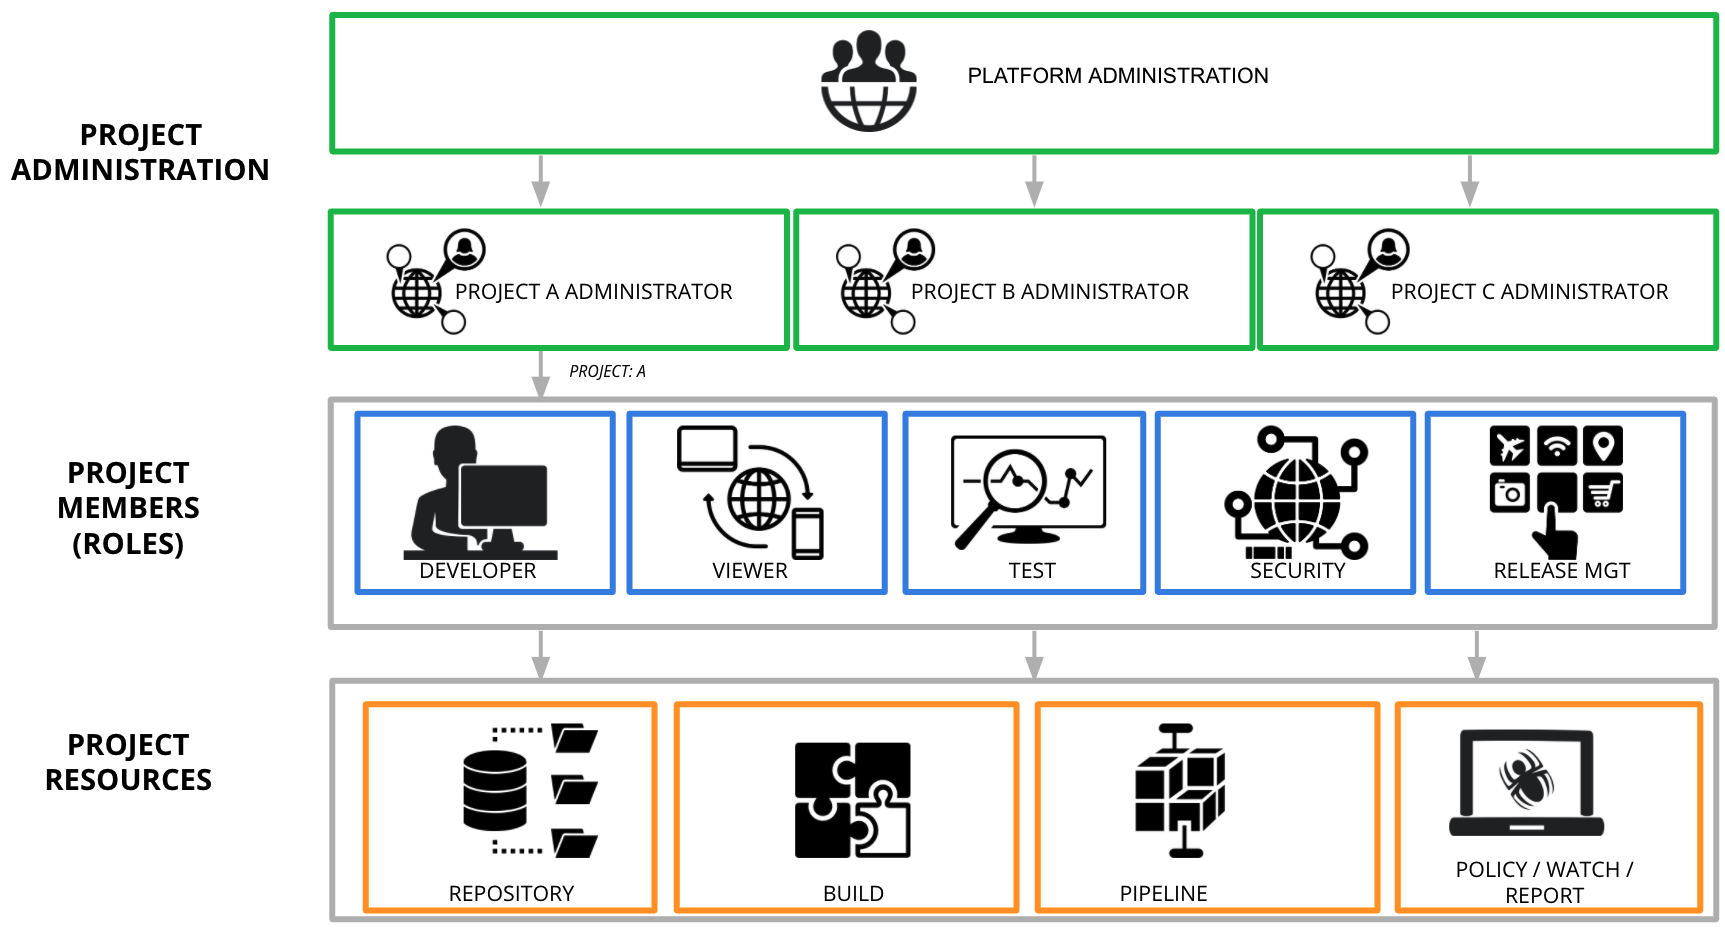 JFrog Projects - Role Based Access Control